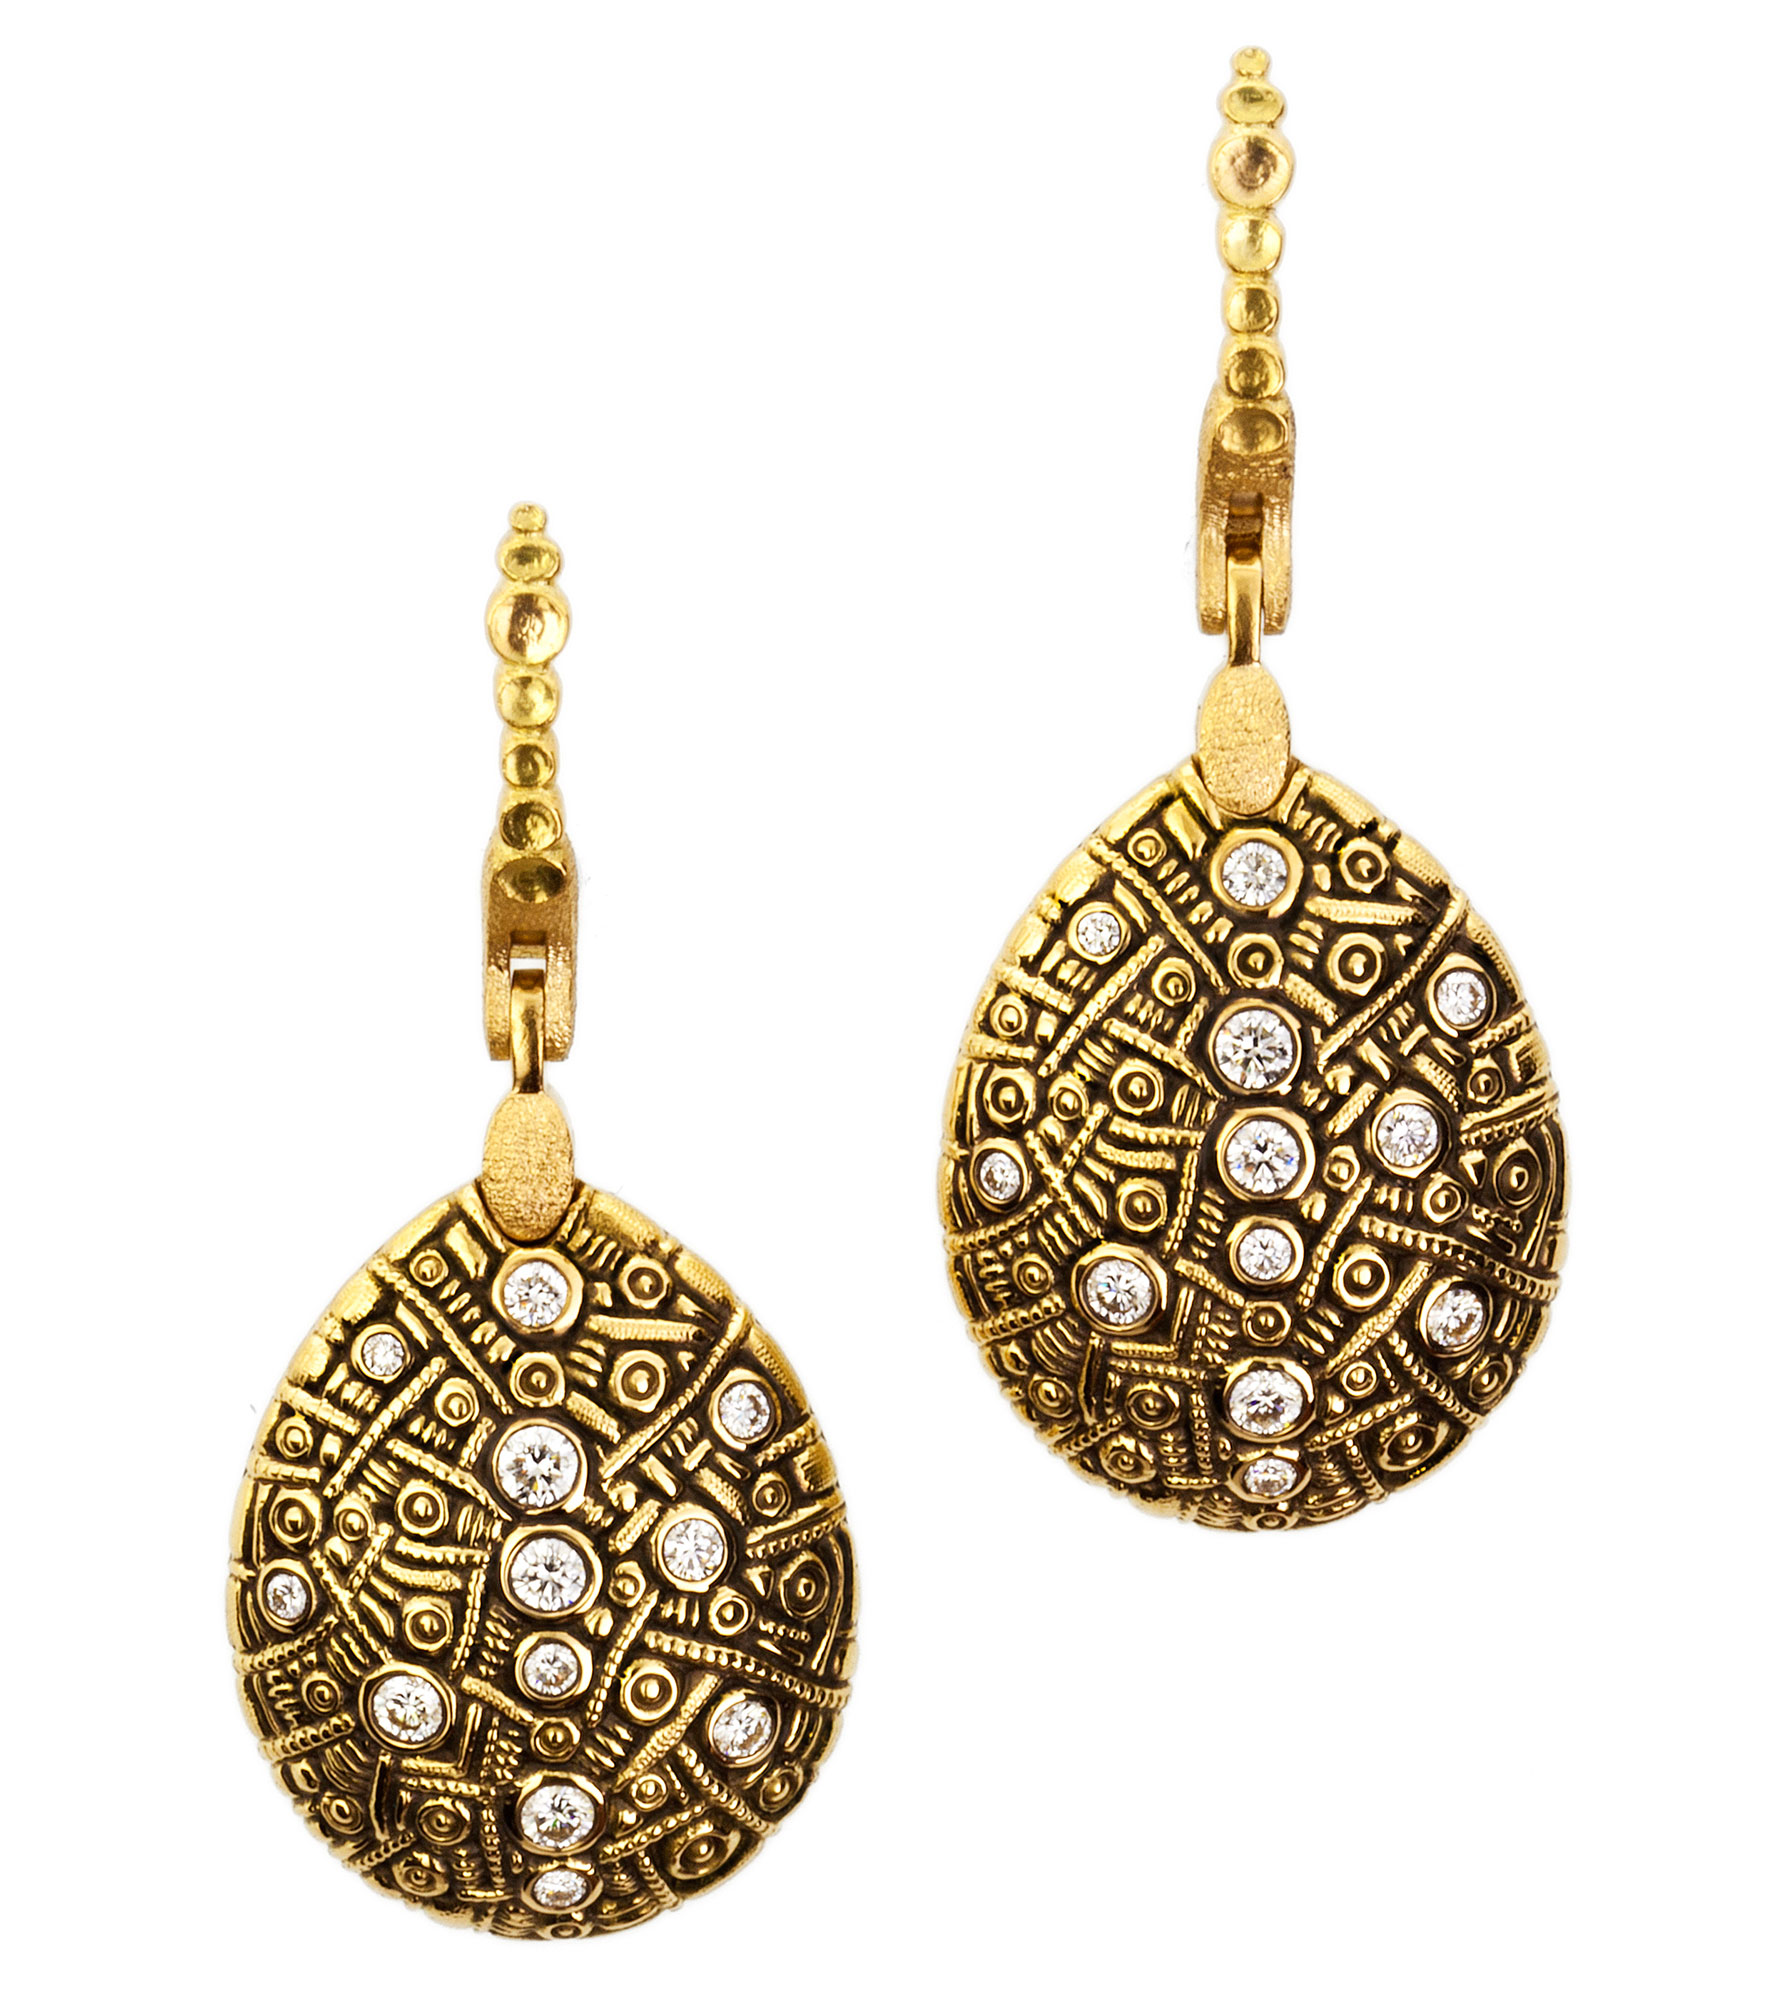 image earrings diamond best in set world jewelry s ladies